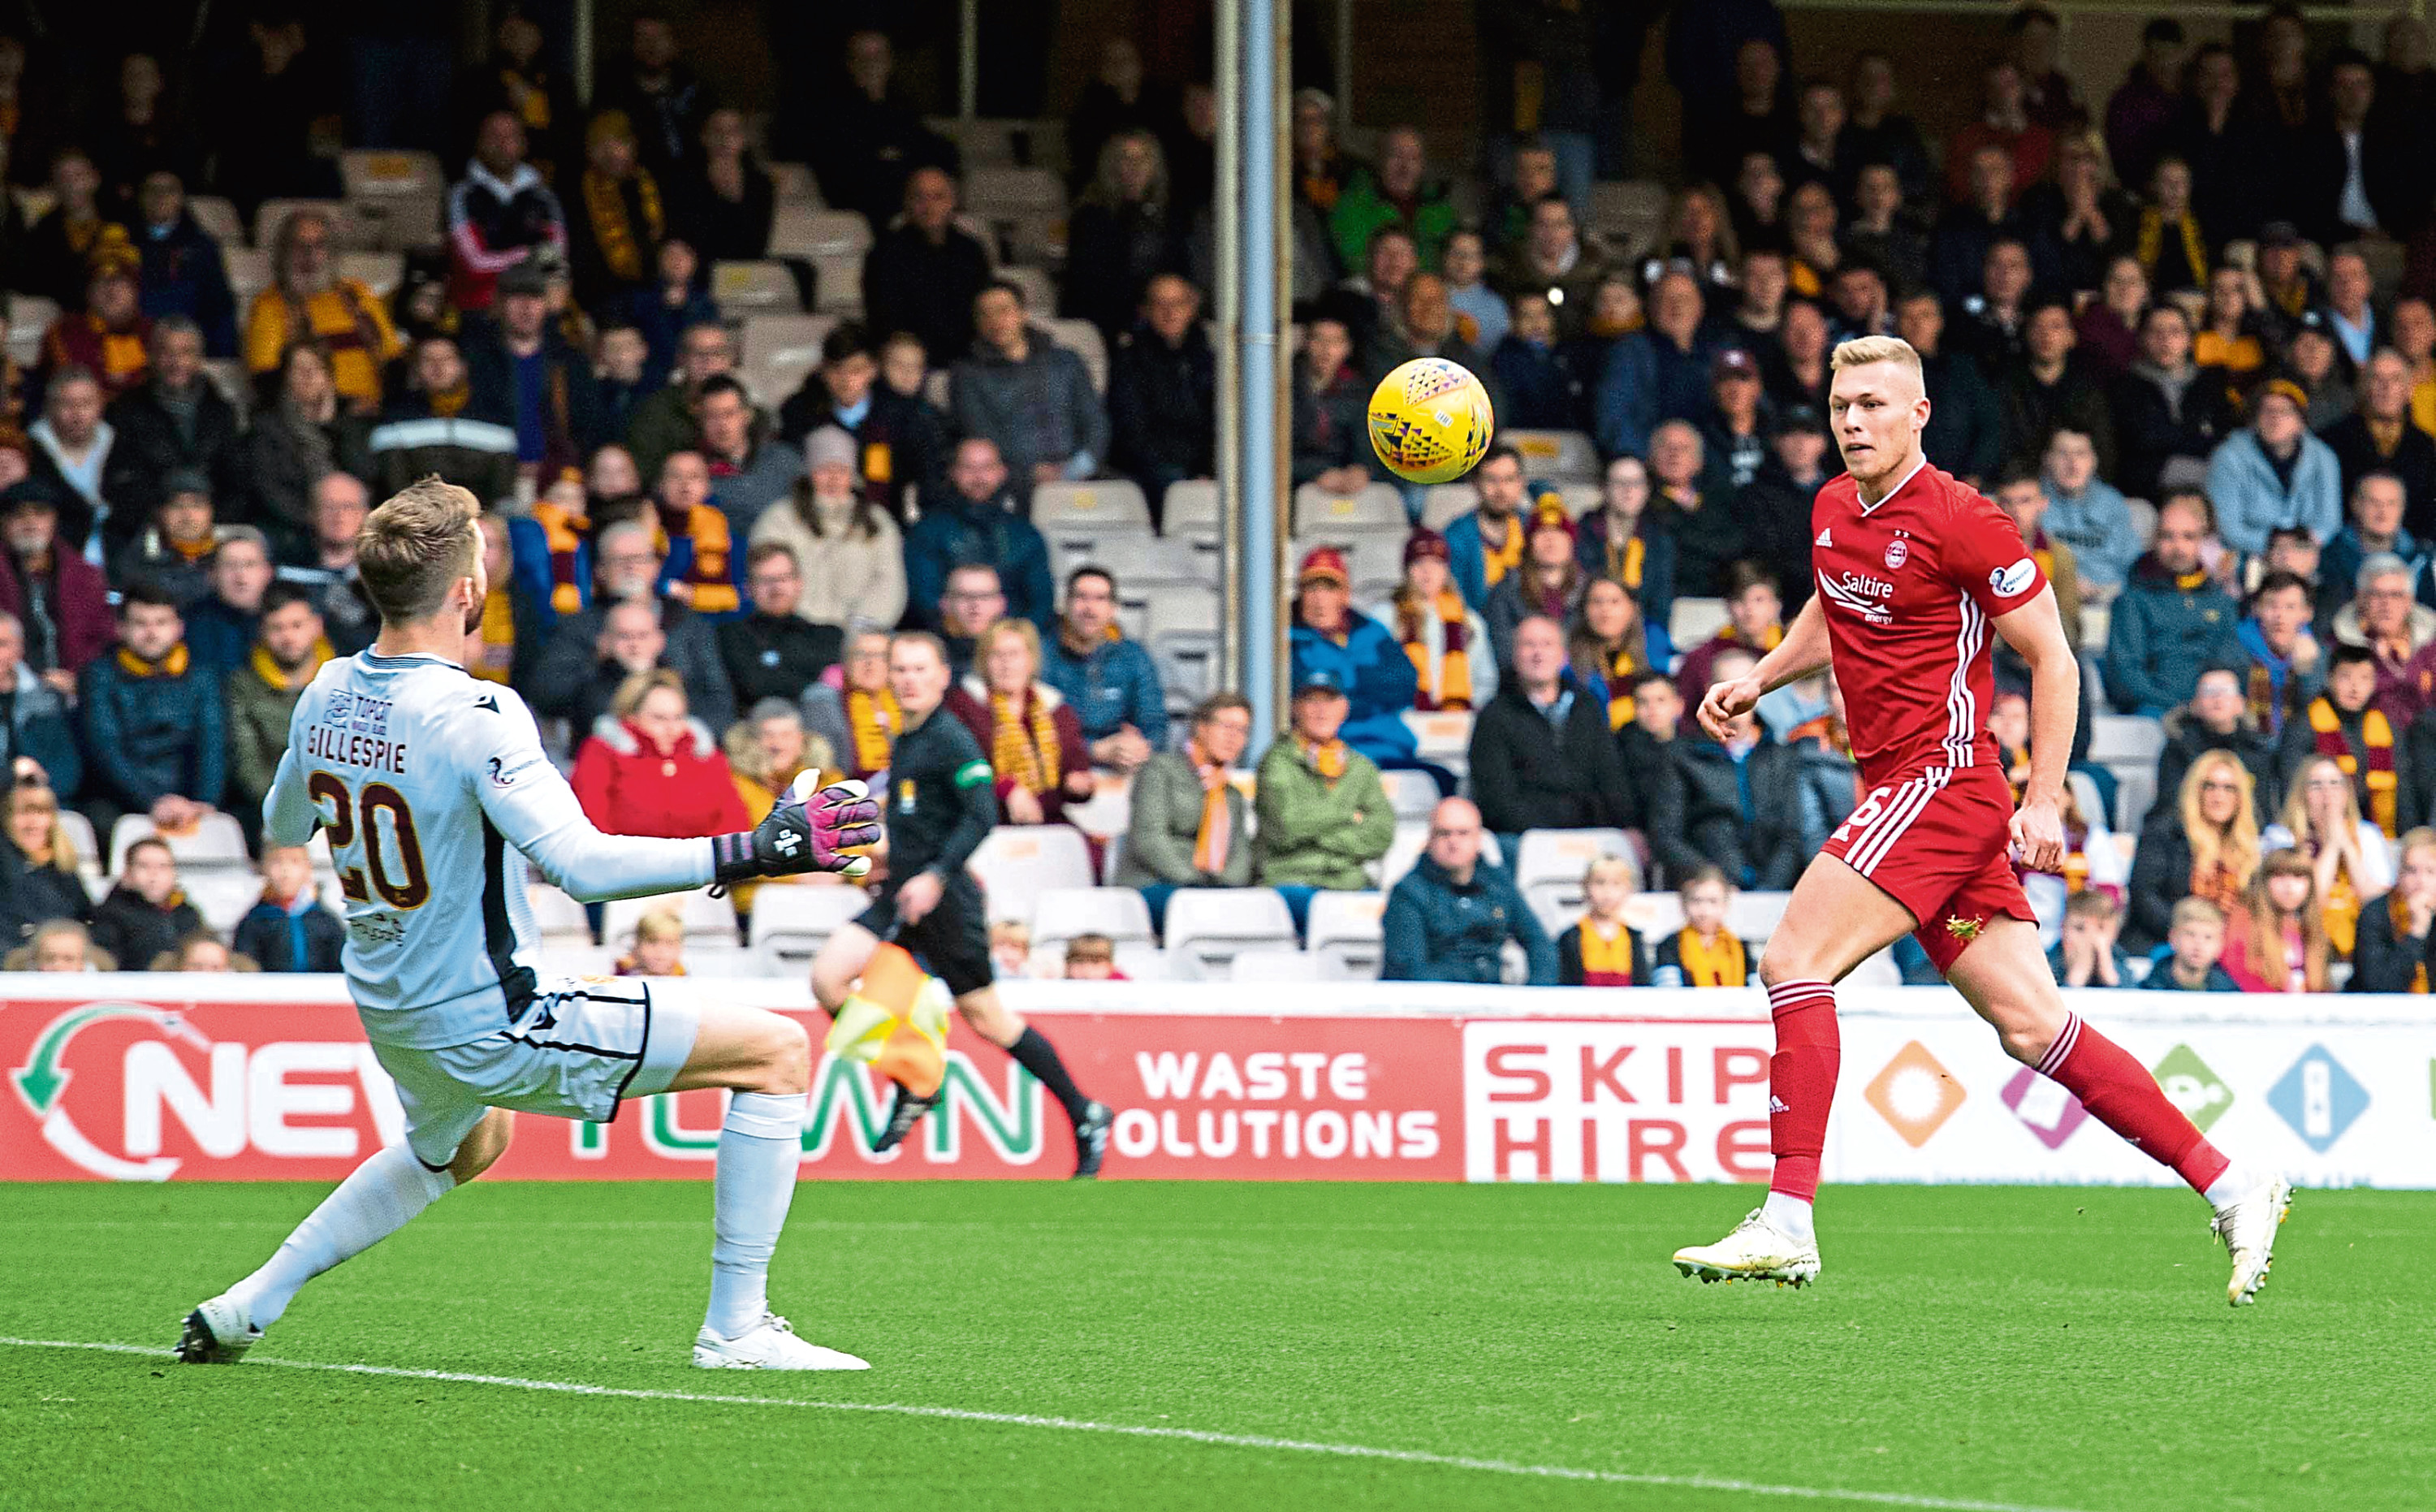 Sam Cosgrove is pictured making it 1-0 to Aberdeen during the Ladbrokes Premiership match between Motherwell and Aberdeen.